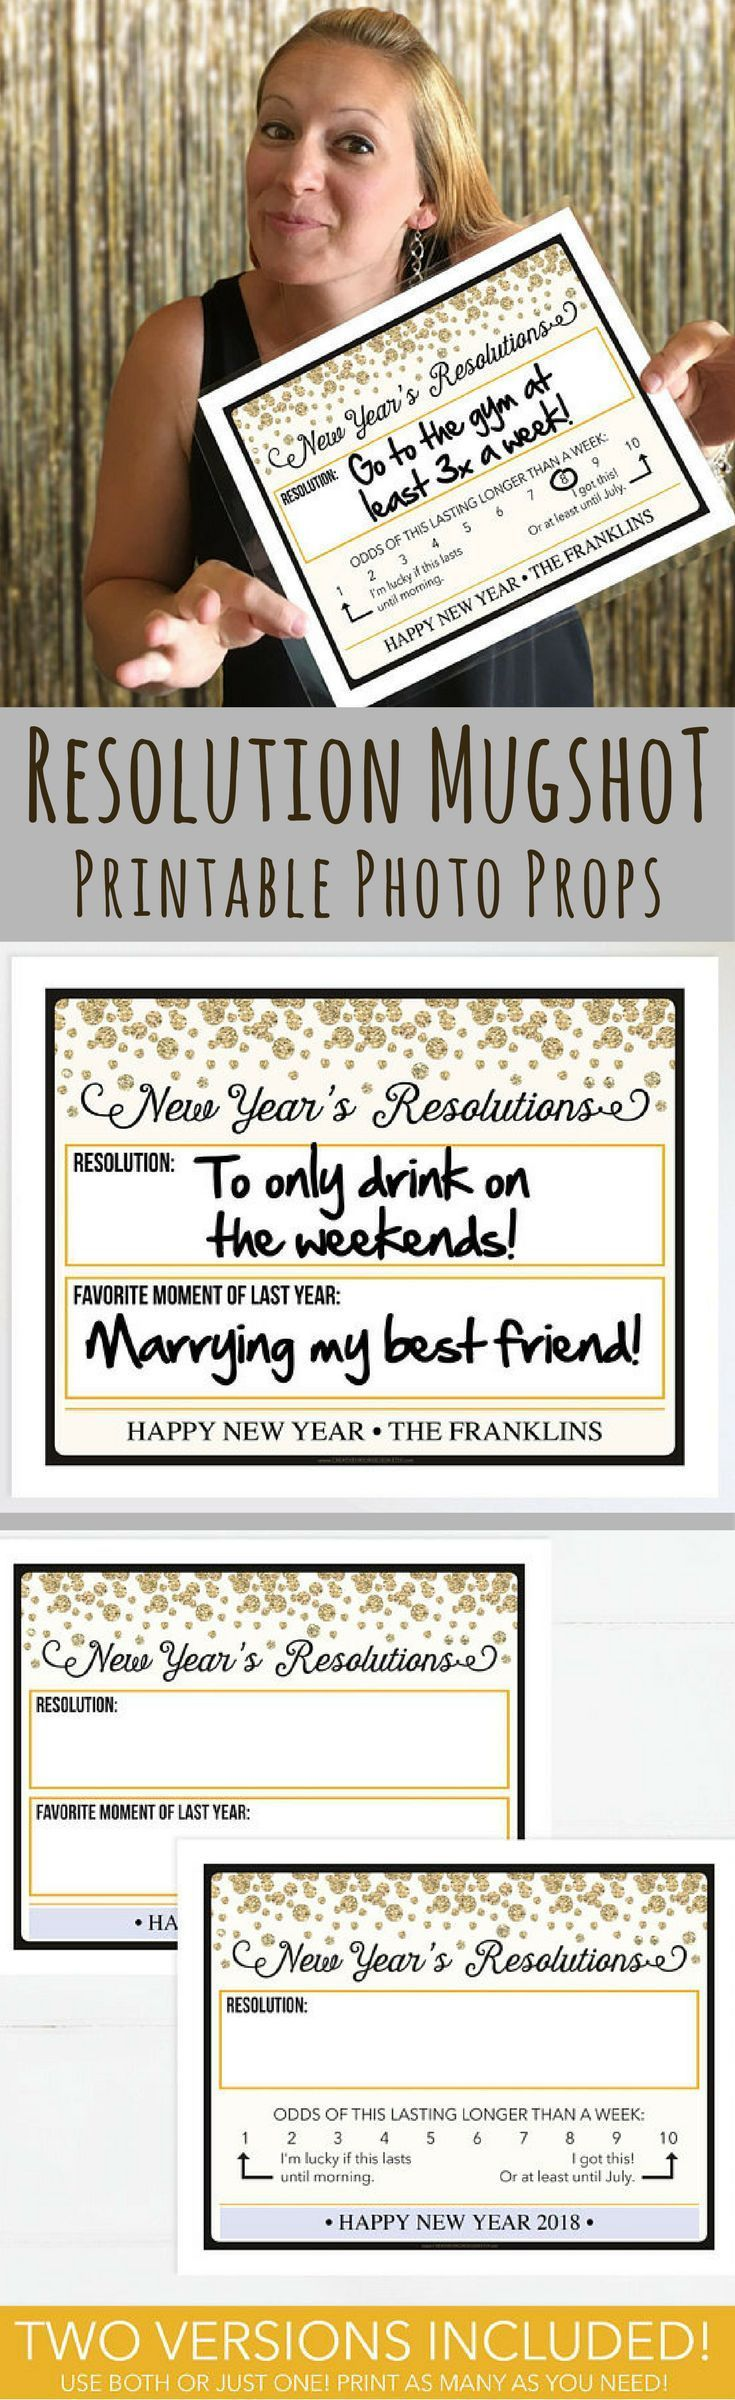 Printable Photo Booth Props - New Year's Eve Party Ideas, 2018 New Year's Eve Mug Shot, New Year's Resolutions, New Years Eve Decorations, Photo Prop, Instant Download, Printable New Years Eve Decor, NYE 2018, DIY New Year's Eve Decor, DIY New Year's Party Ideas, Photo Wall Backdrop, Picture Booth Prop, New Years Eve 2018 Ideas, Christmas Party Games Ideas, Happy New Year, New Year's Resolutions Ideas, NYE Party Decor #ad